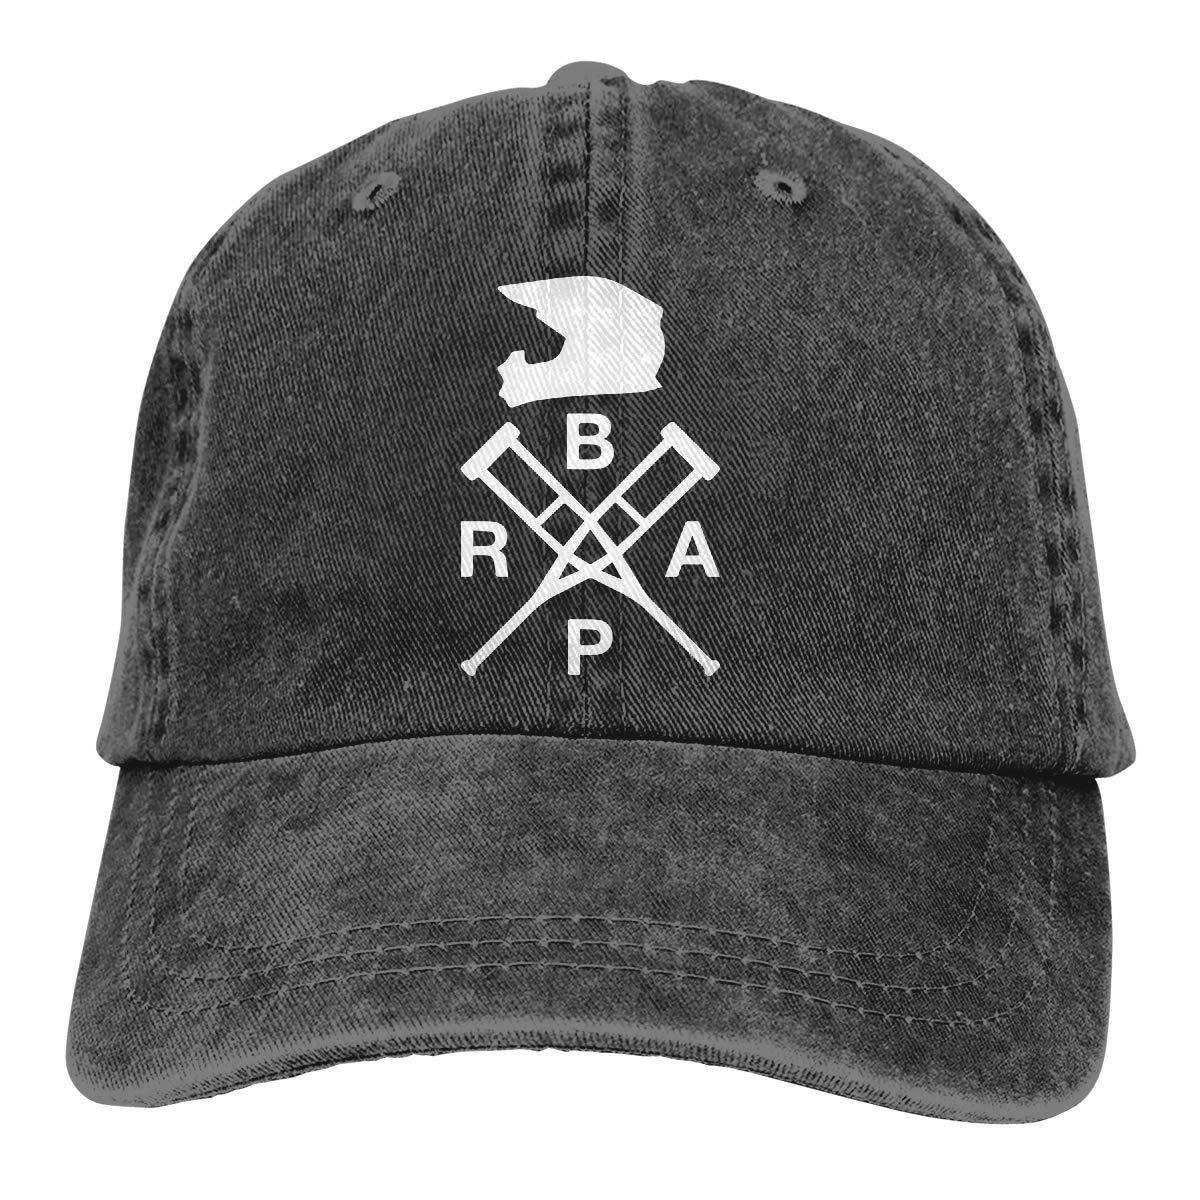 PMGM-C Dirt Bike Unisex Trendy Cowboy Hat Hip Hop Cap Adjustable Baseball Cap